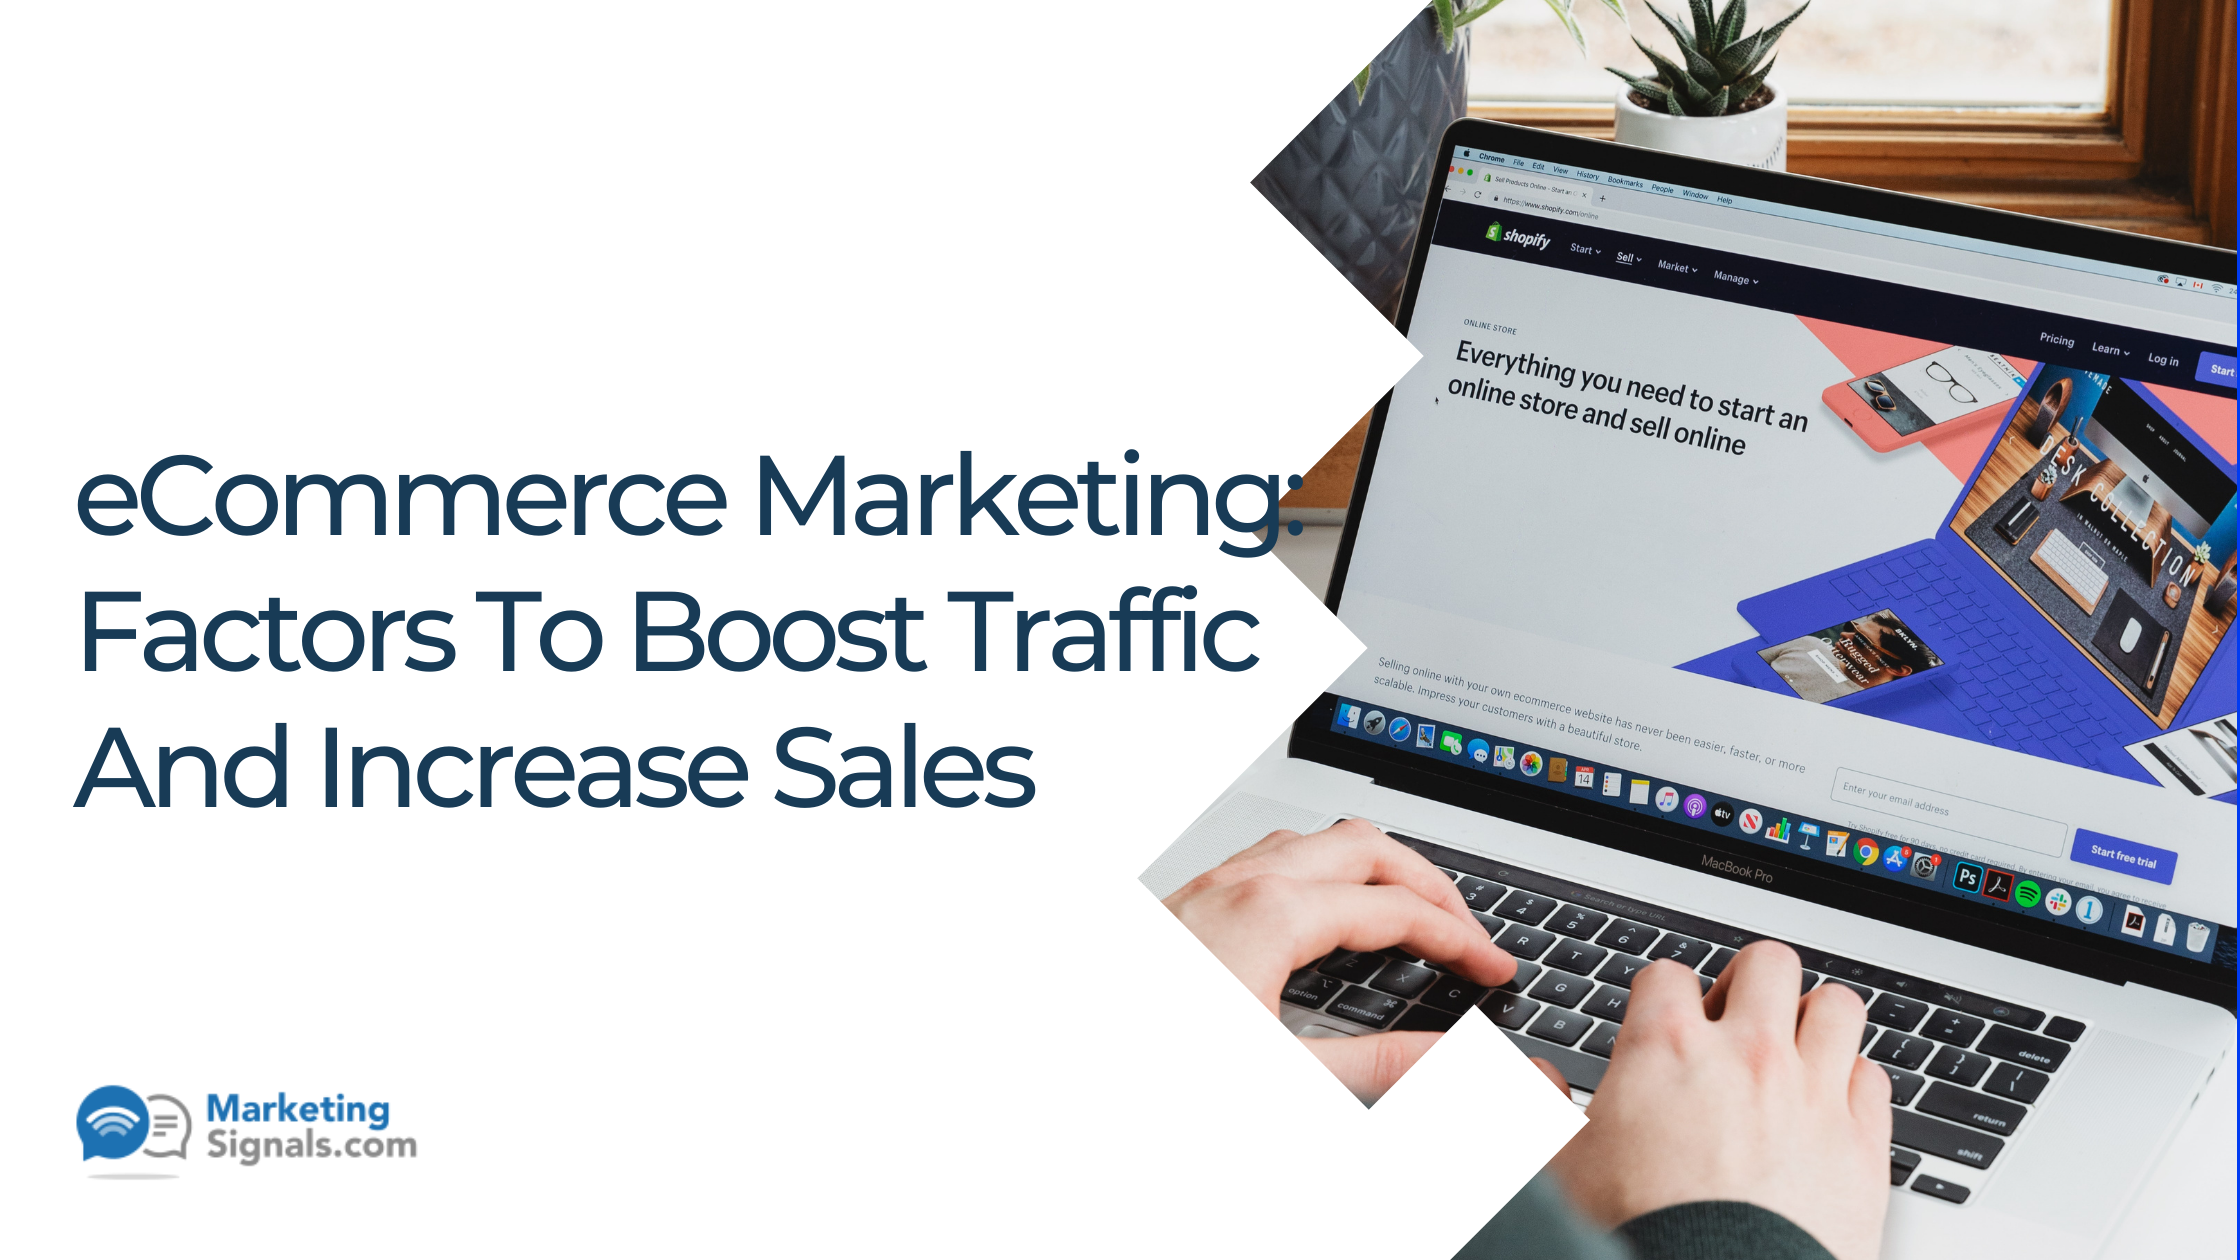 ecommerce-marketing-Boost-Traffic-and-Increase-Sales